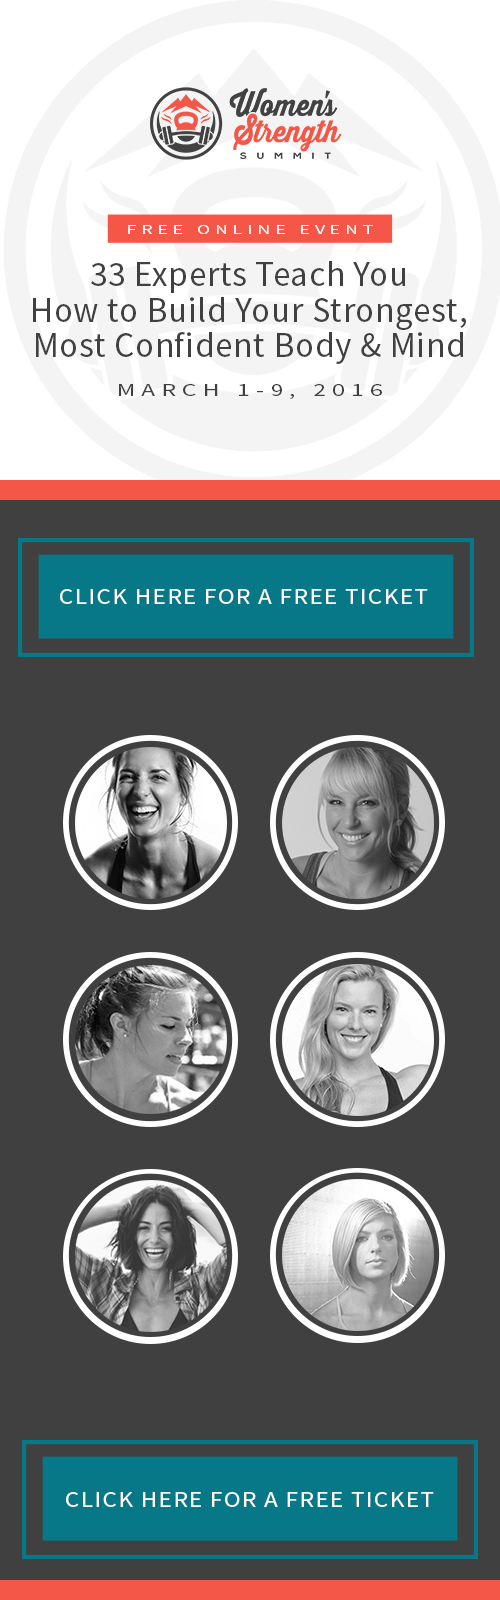 Women's Strength Summit | stephgaudreau.com